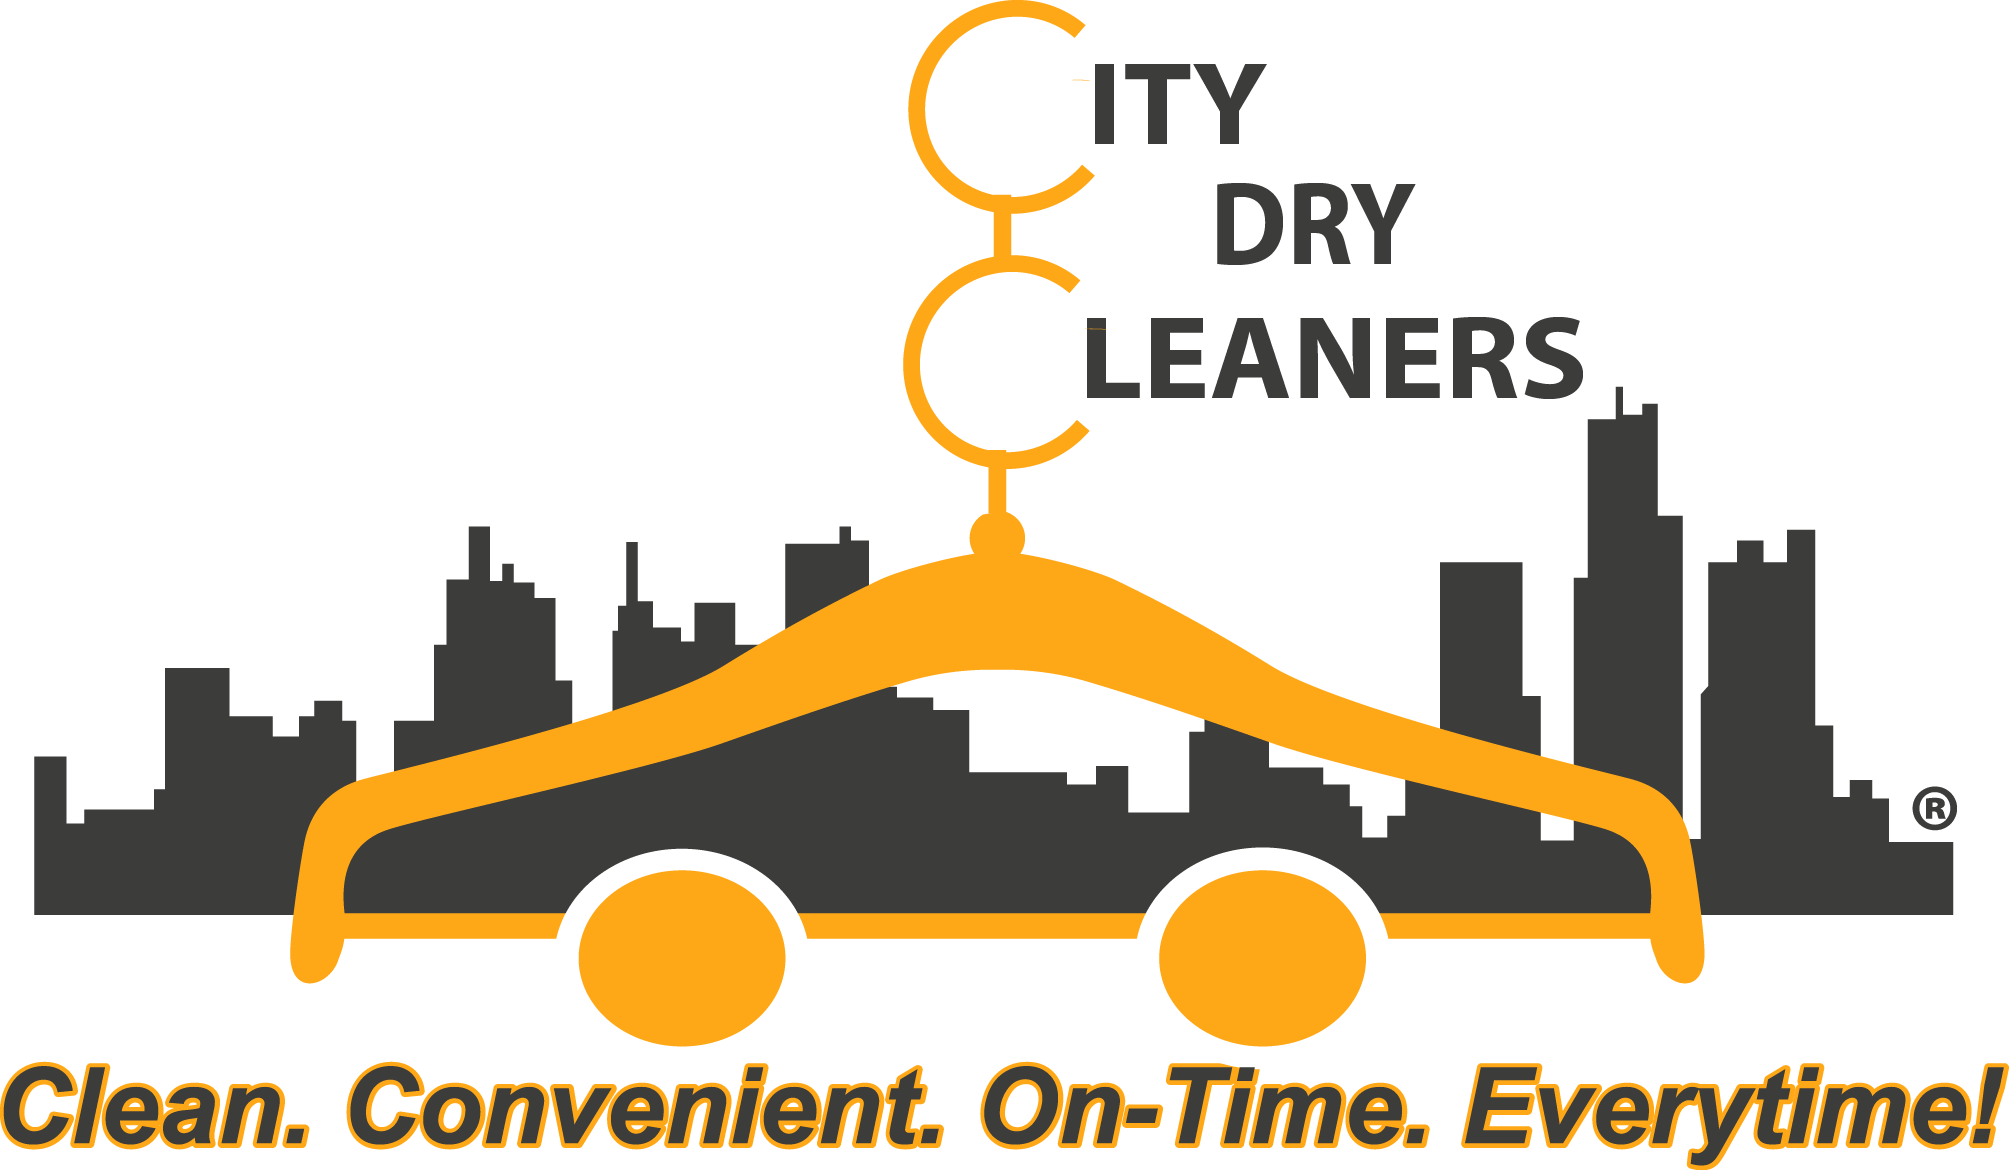 CITYDRYCLEANERS Logo (ai)